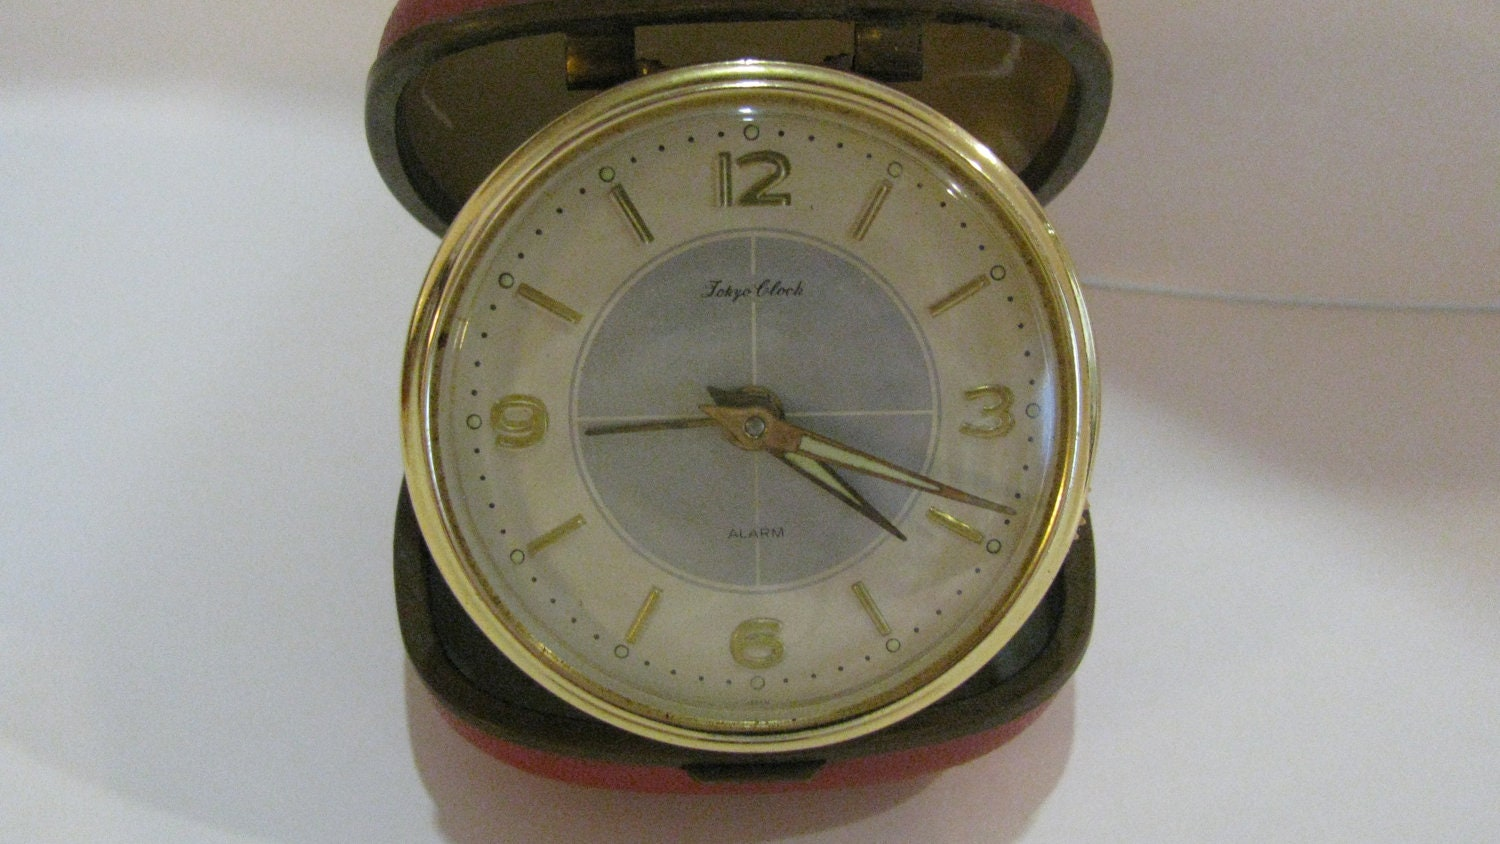 Vintage Wind-Up Travel Alarm Clock Toyko Clock by fromanotherday